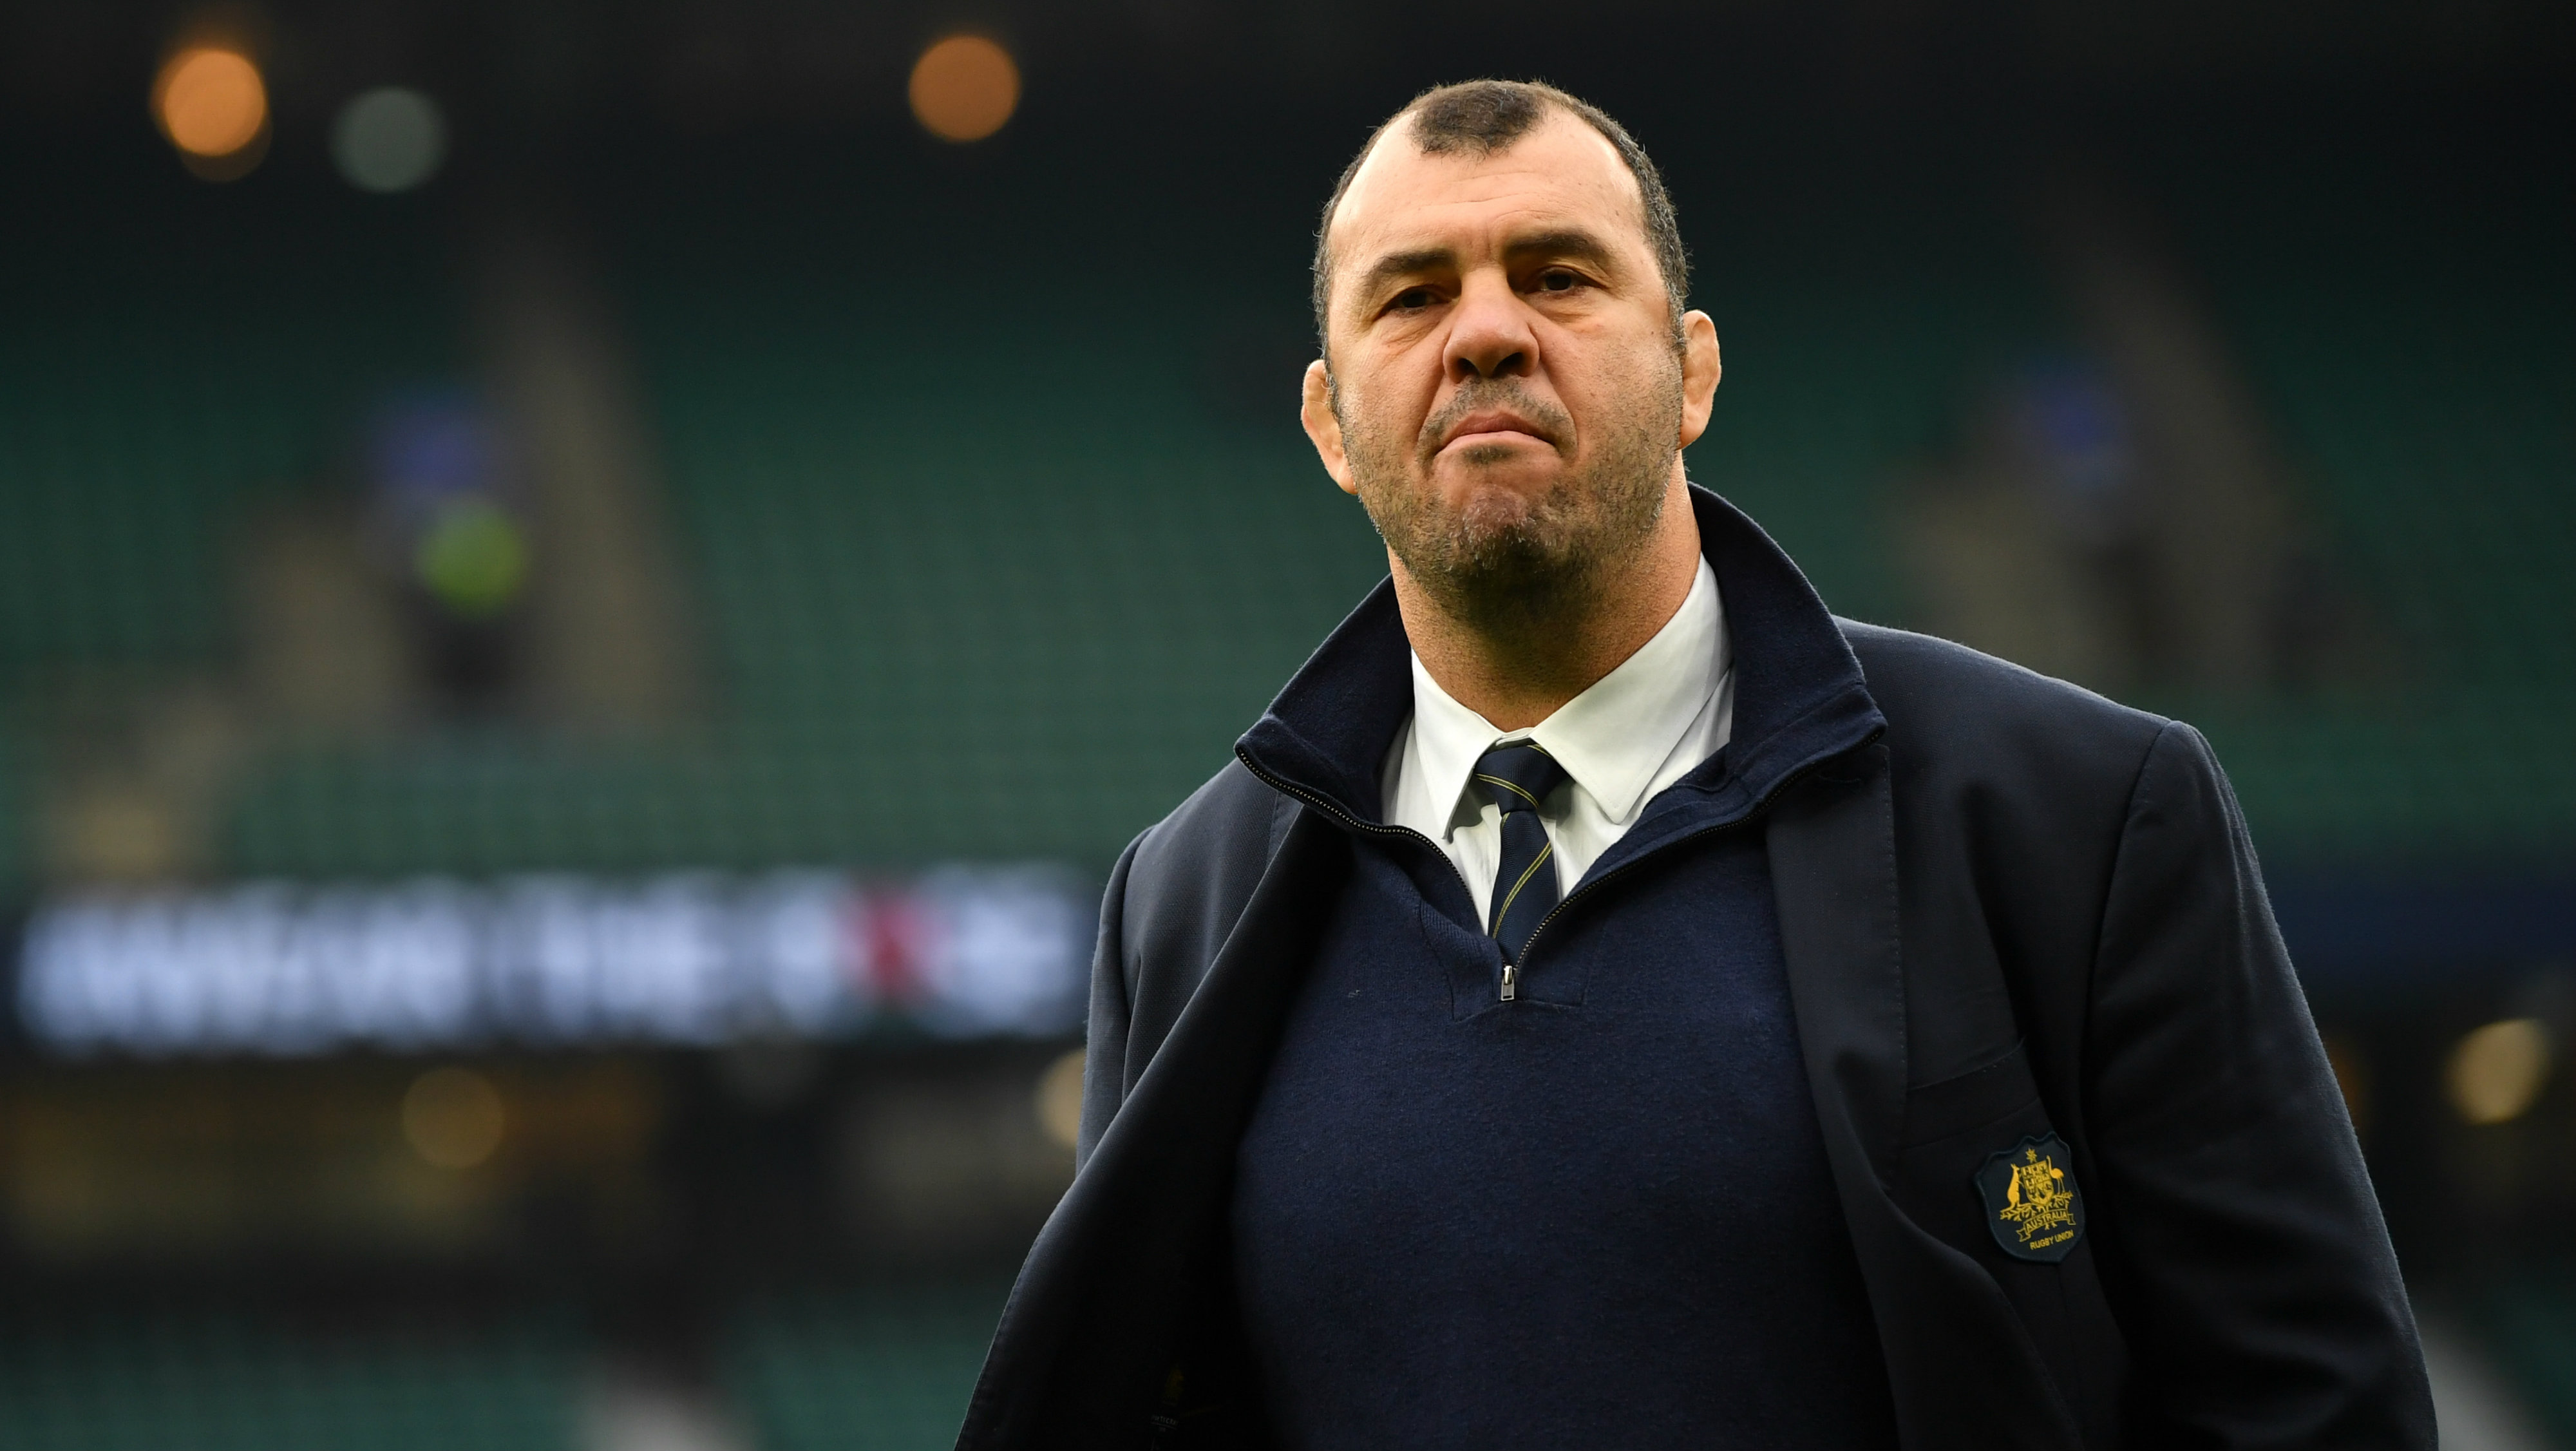 Former Wallabies captain Andrew Slack slams 'sore loser' Michael Cheika after coaching exit